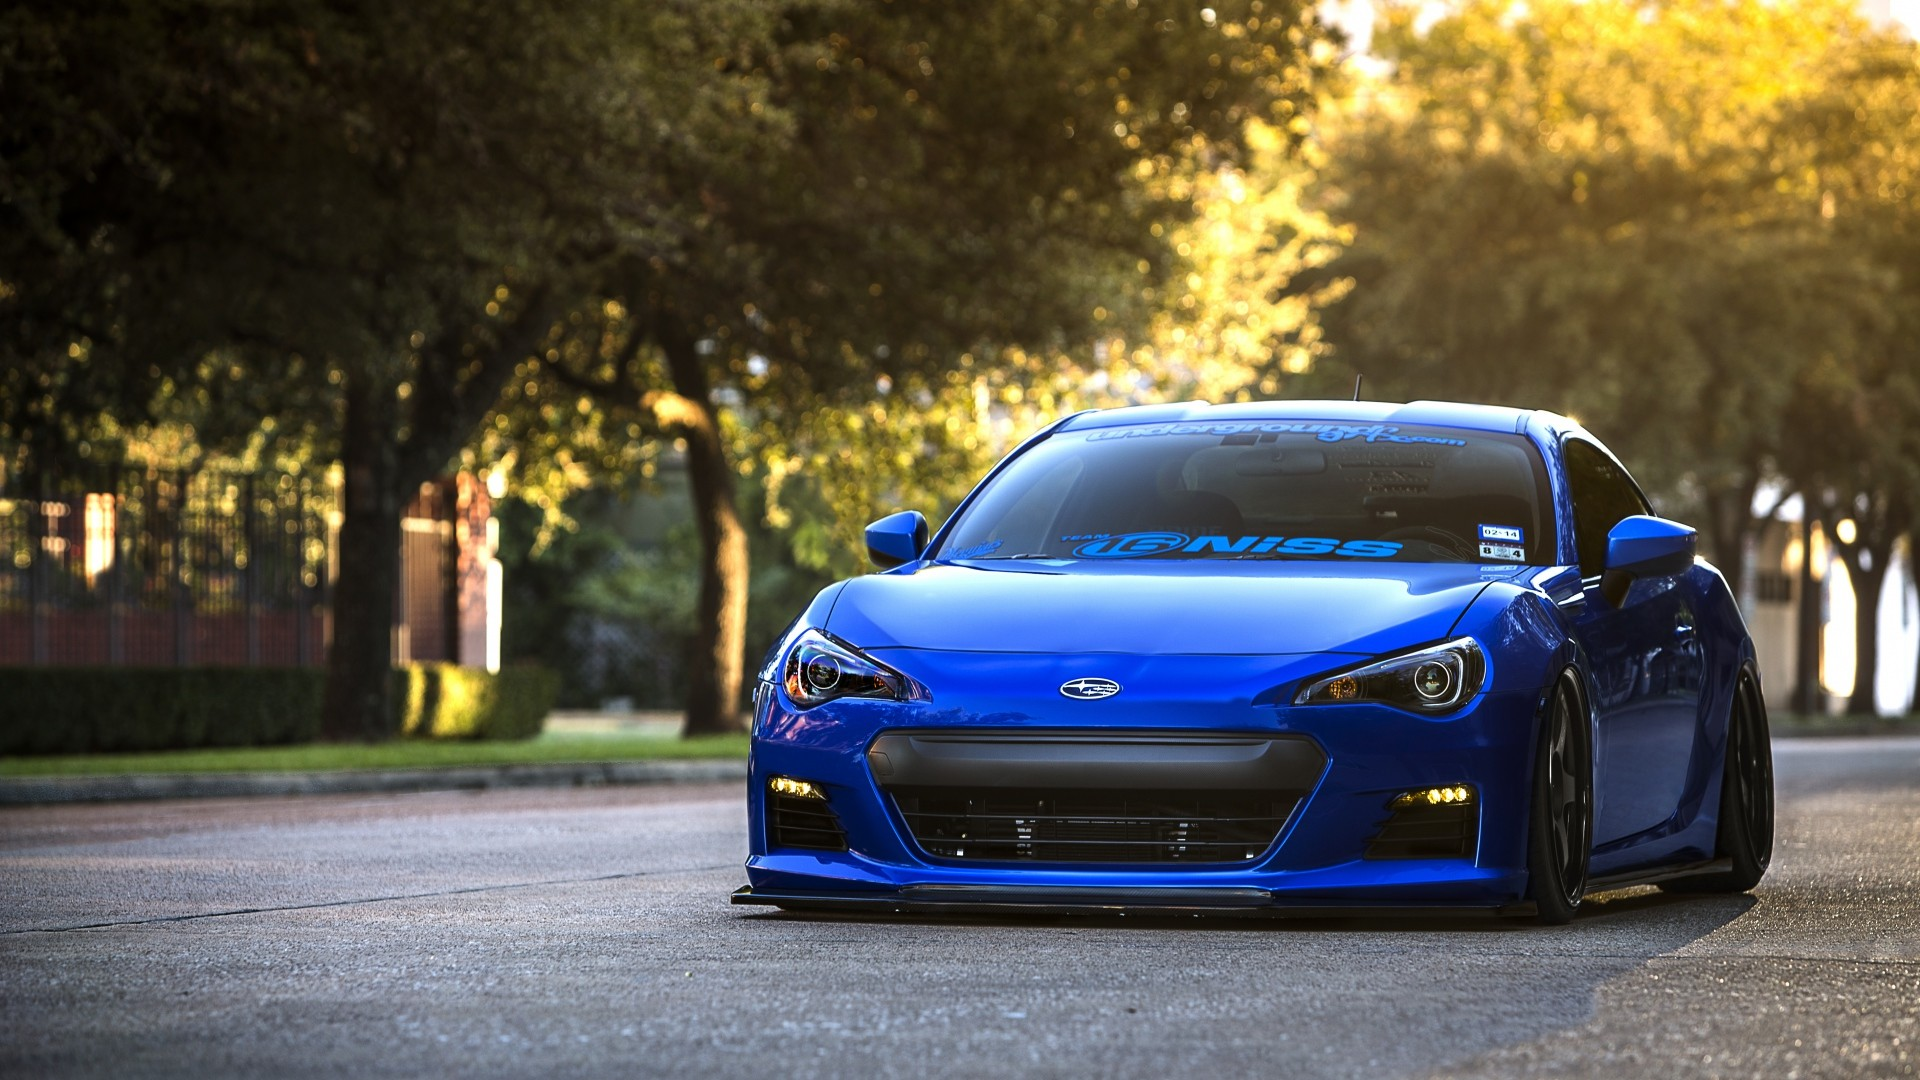 1920x1080 Subaru Sports Car Wallpapers Picture with HD Desktop  px 802.07 KB